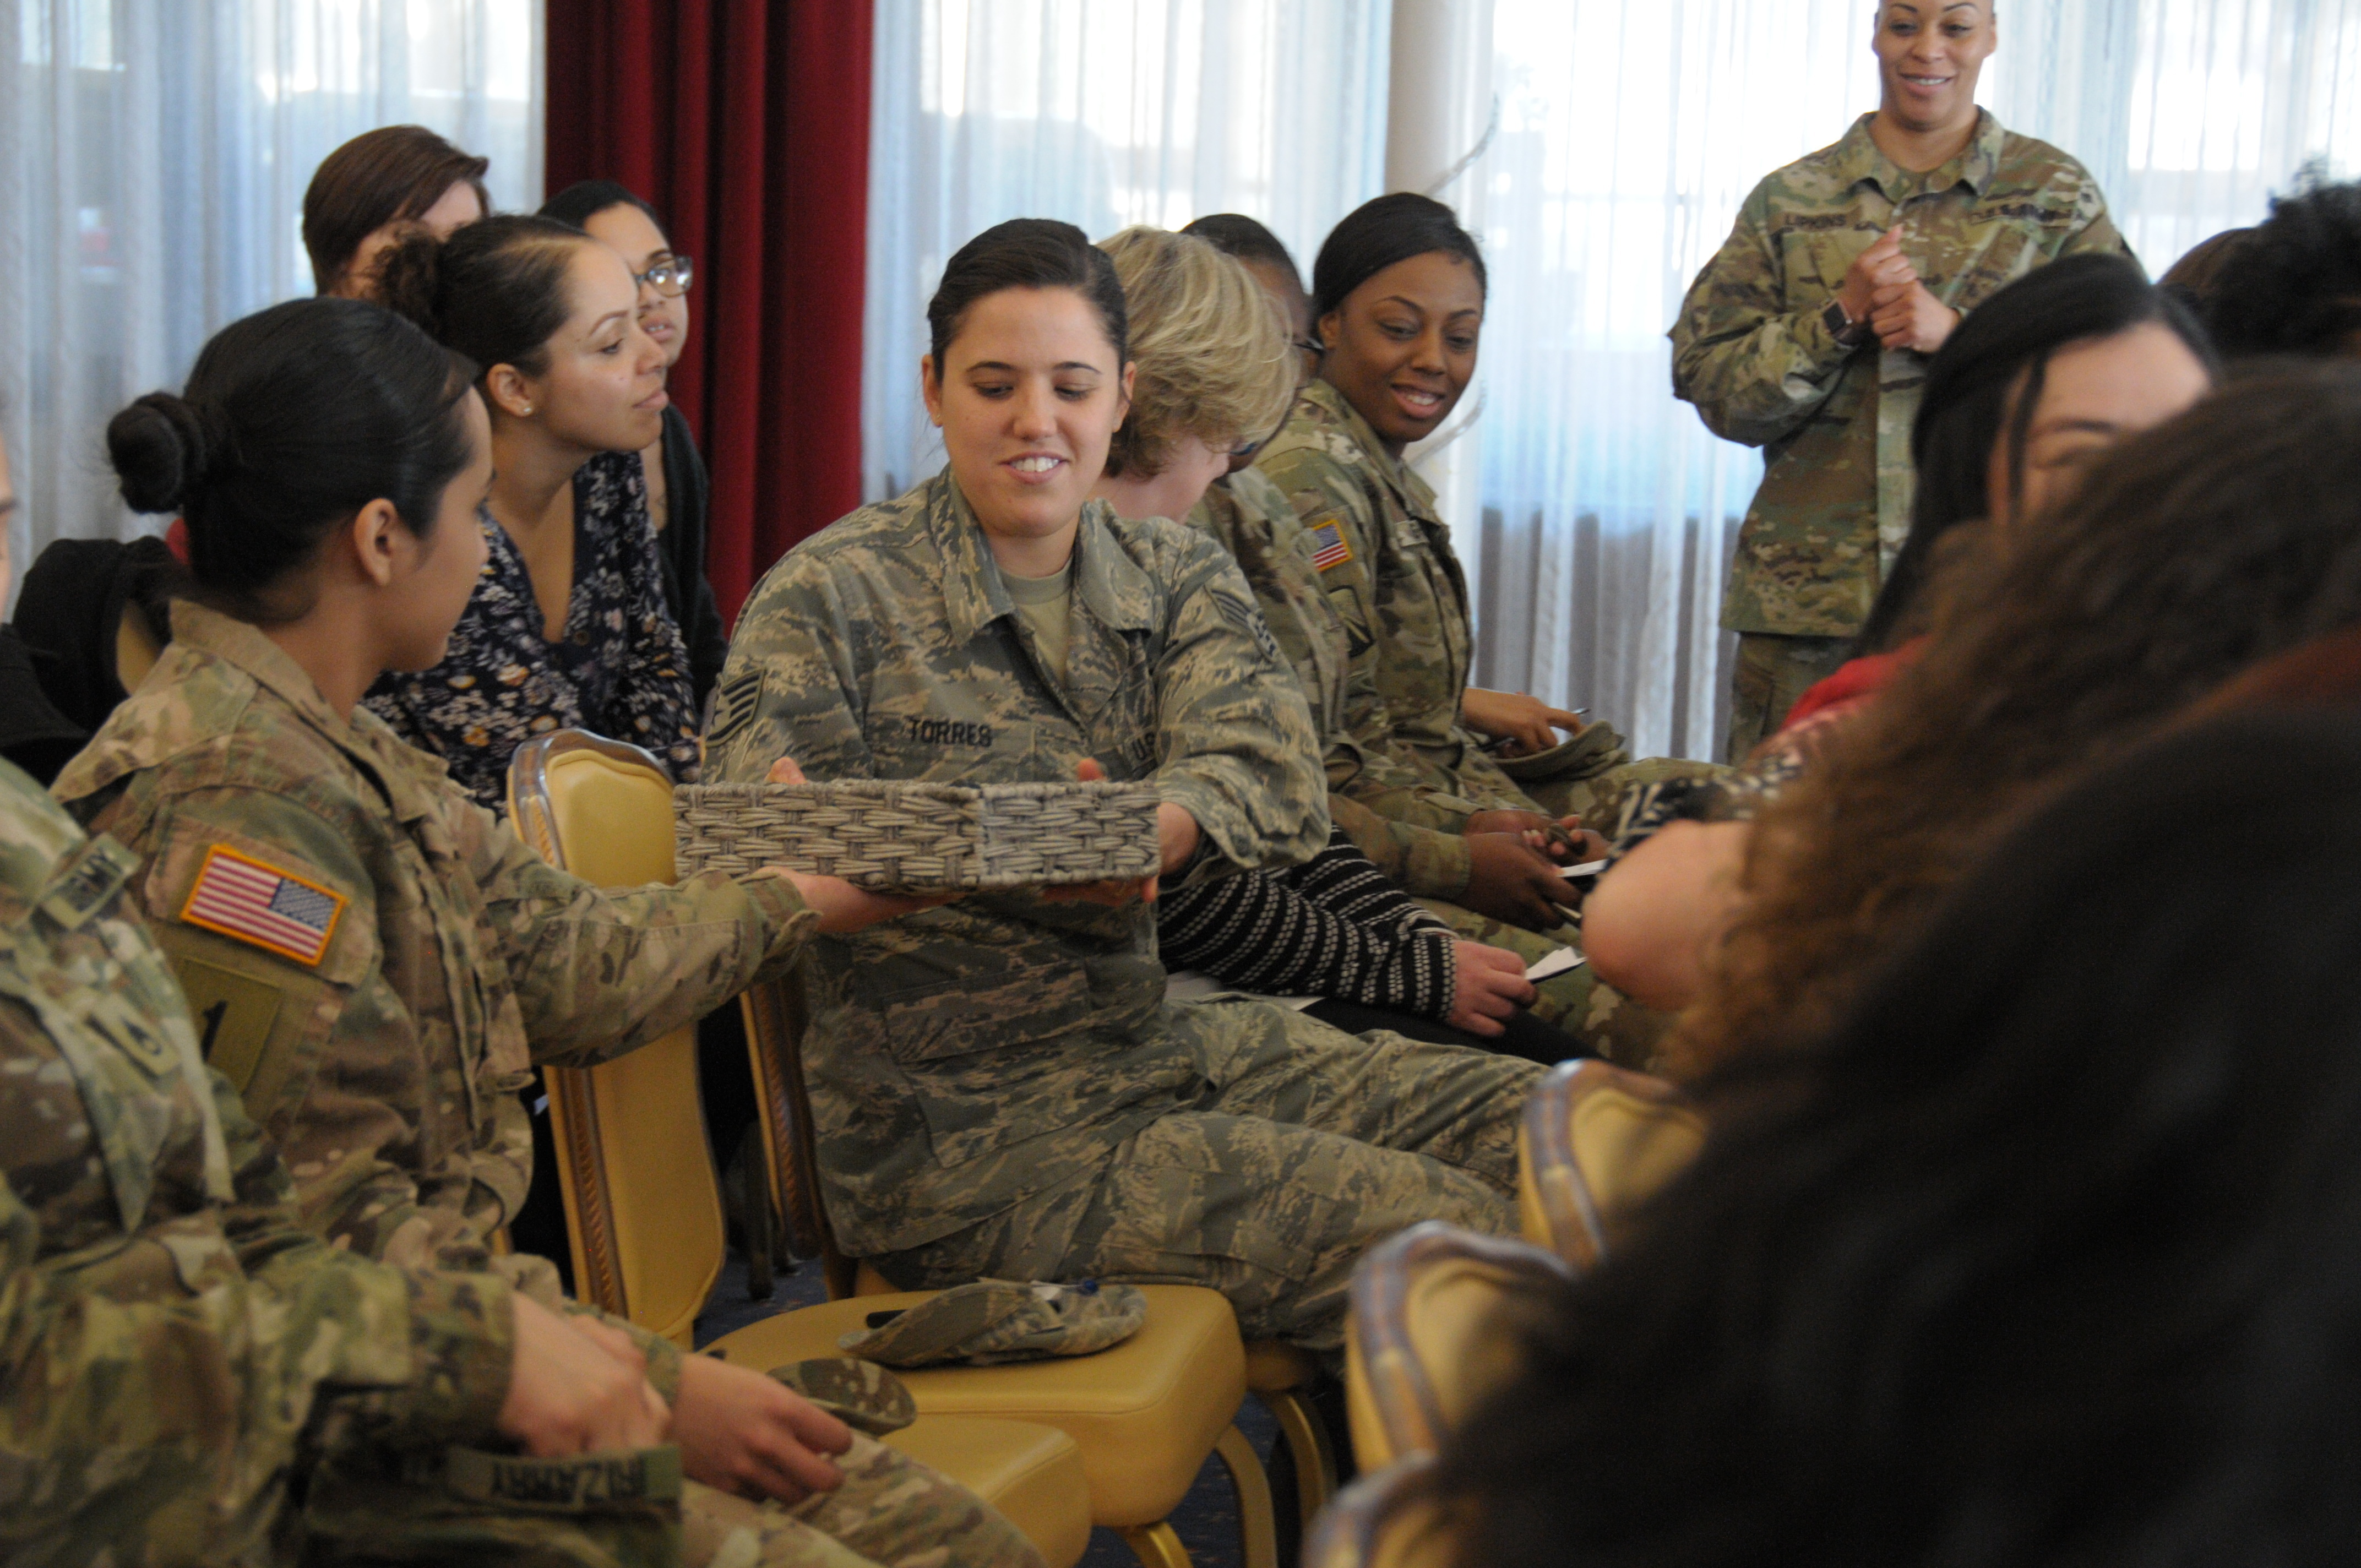 Staff Sgt. Emily Torres reaches for the weighted basket to demonstrate how through team work, she can help unload and carry the weight of her fellow Sisters-in-Arms, March 5 at the Sisters-in-Arms meet and greet located at the Armstrong's Club on Vogelweh housing complex.